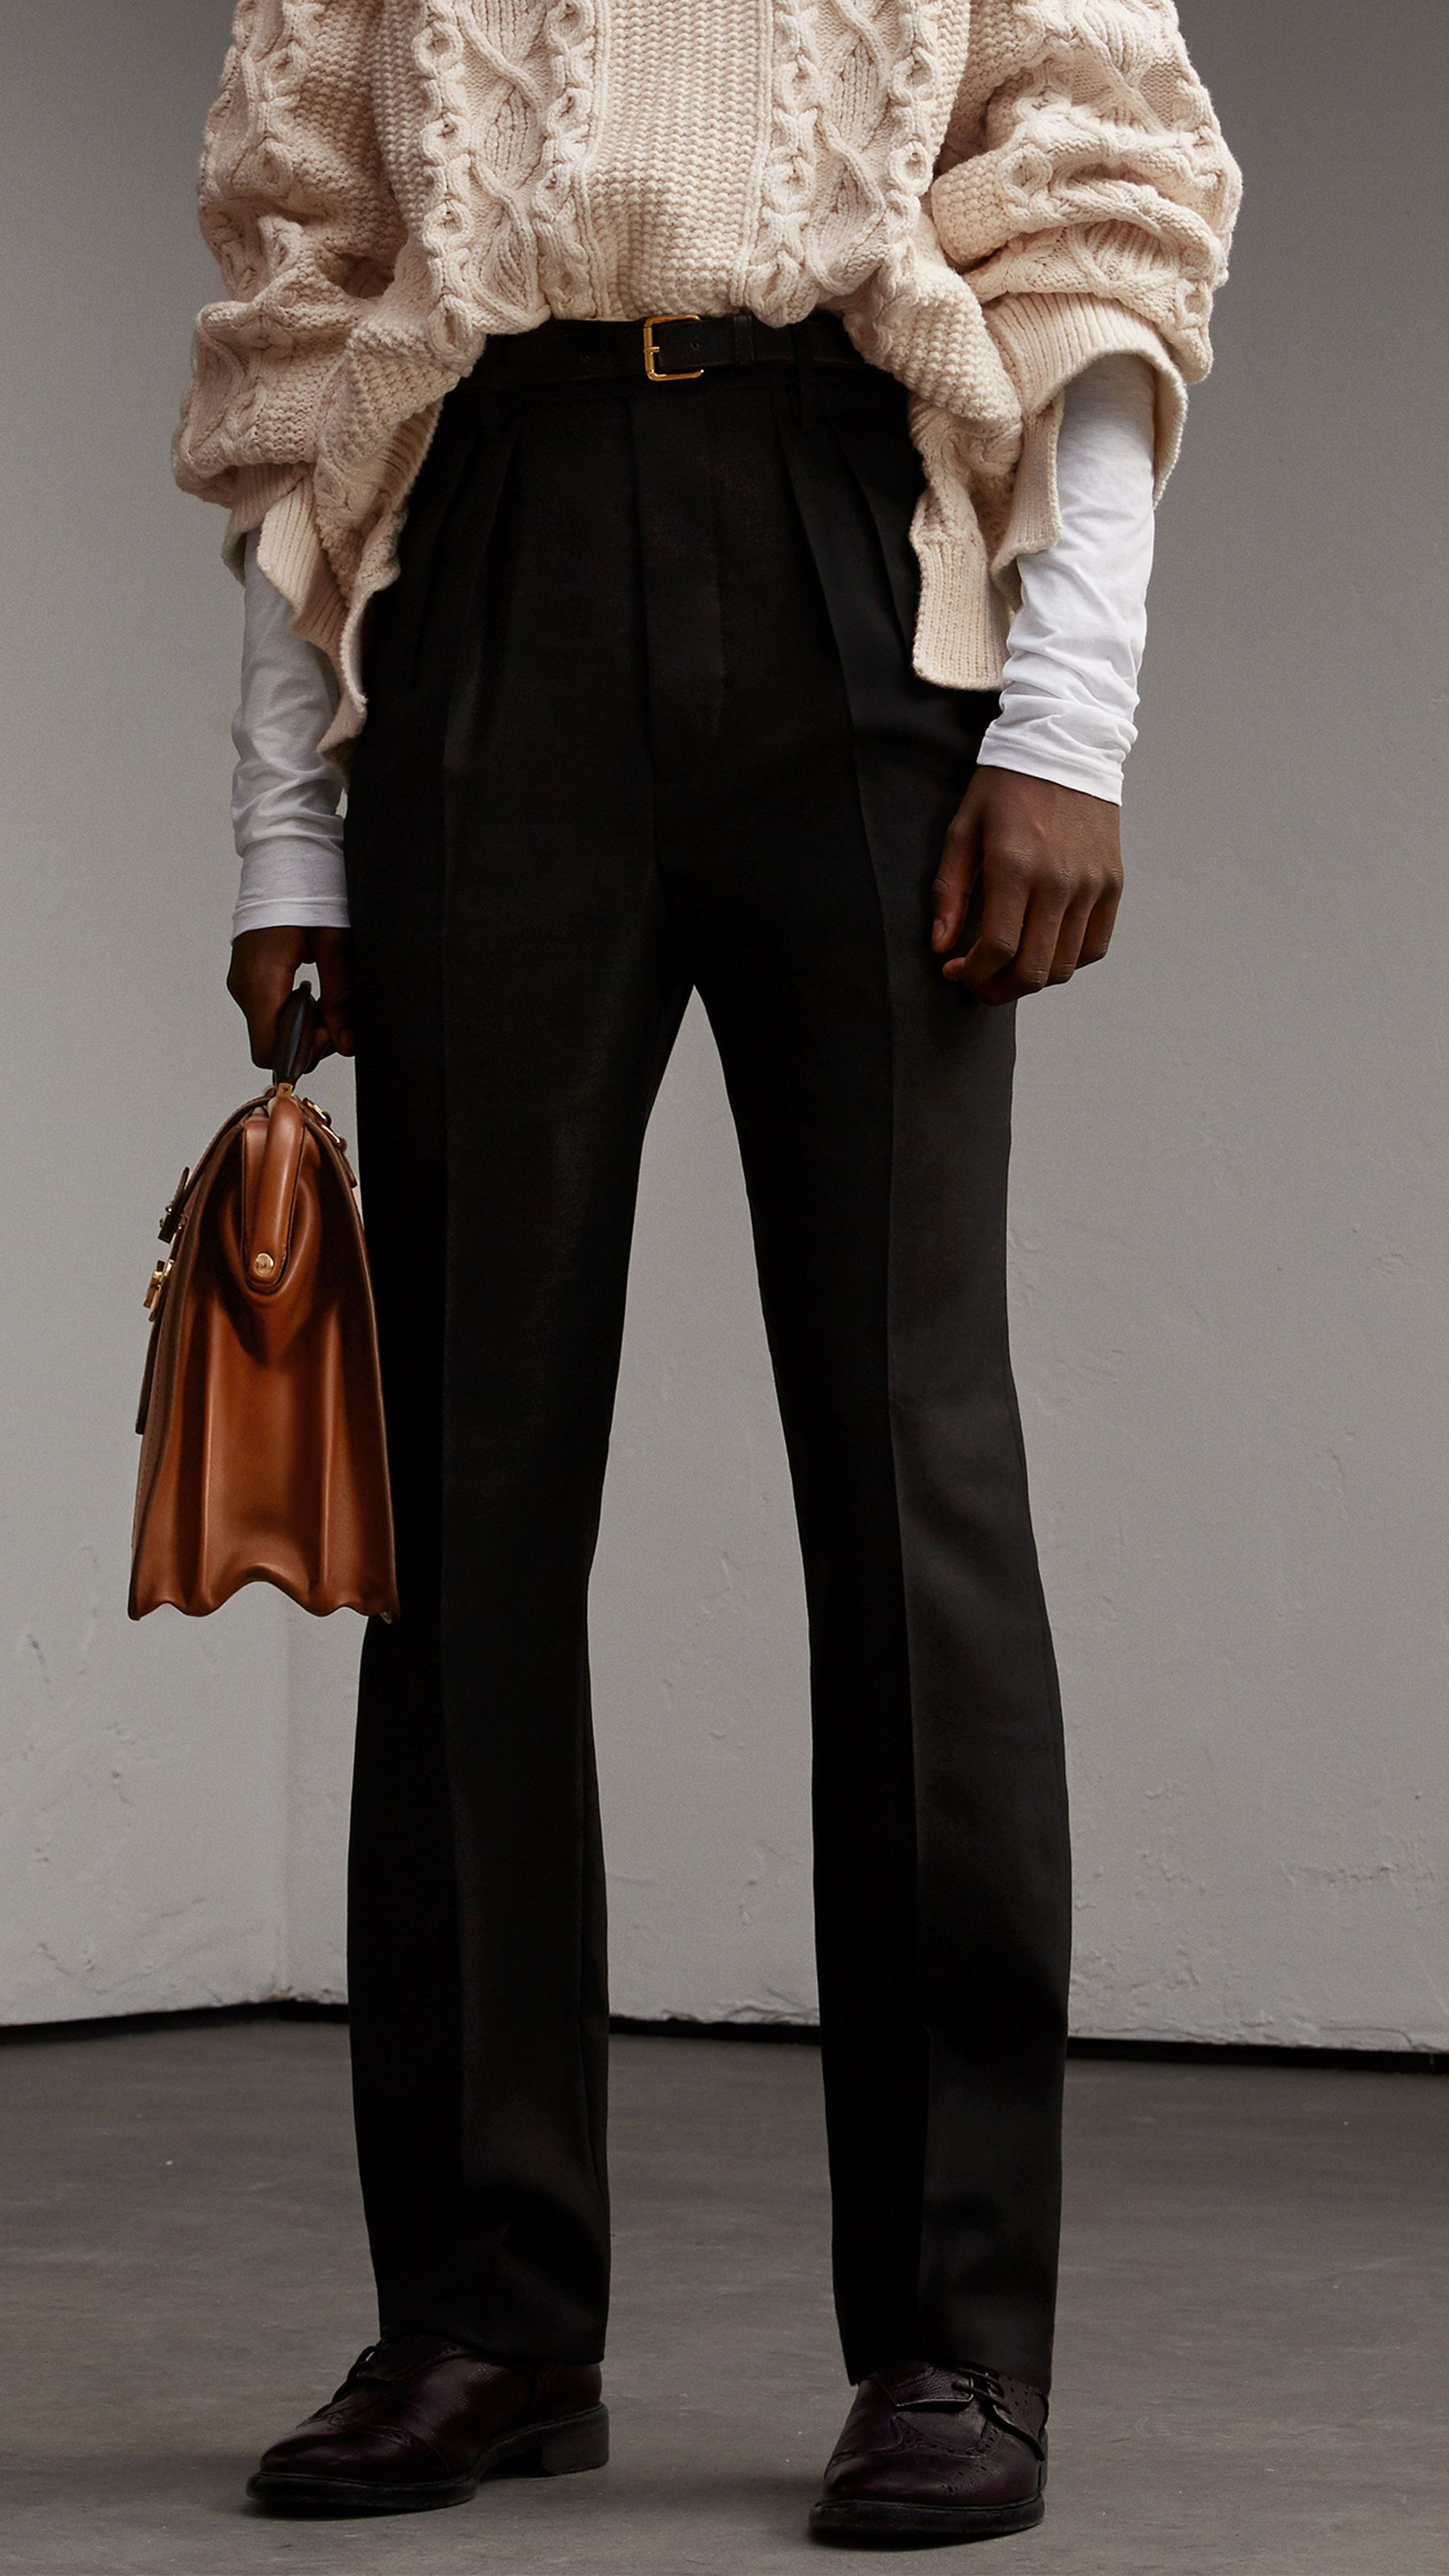 High-waisted Wool Trousers - Black Burberry Fashionable Cheap Online Cheap Sale Authentic Cheap With Paypal Discount Huge Surprise Outlet Store Irlcke